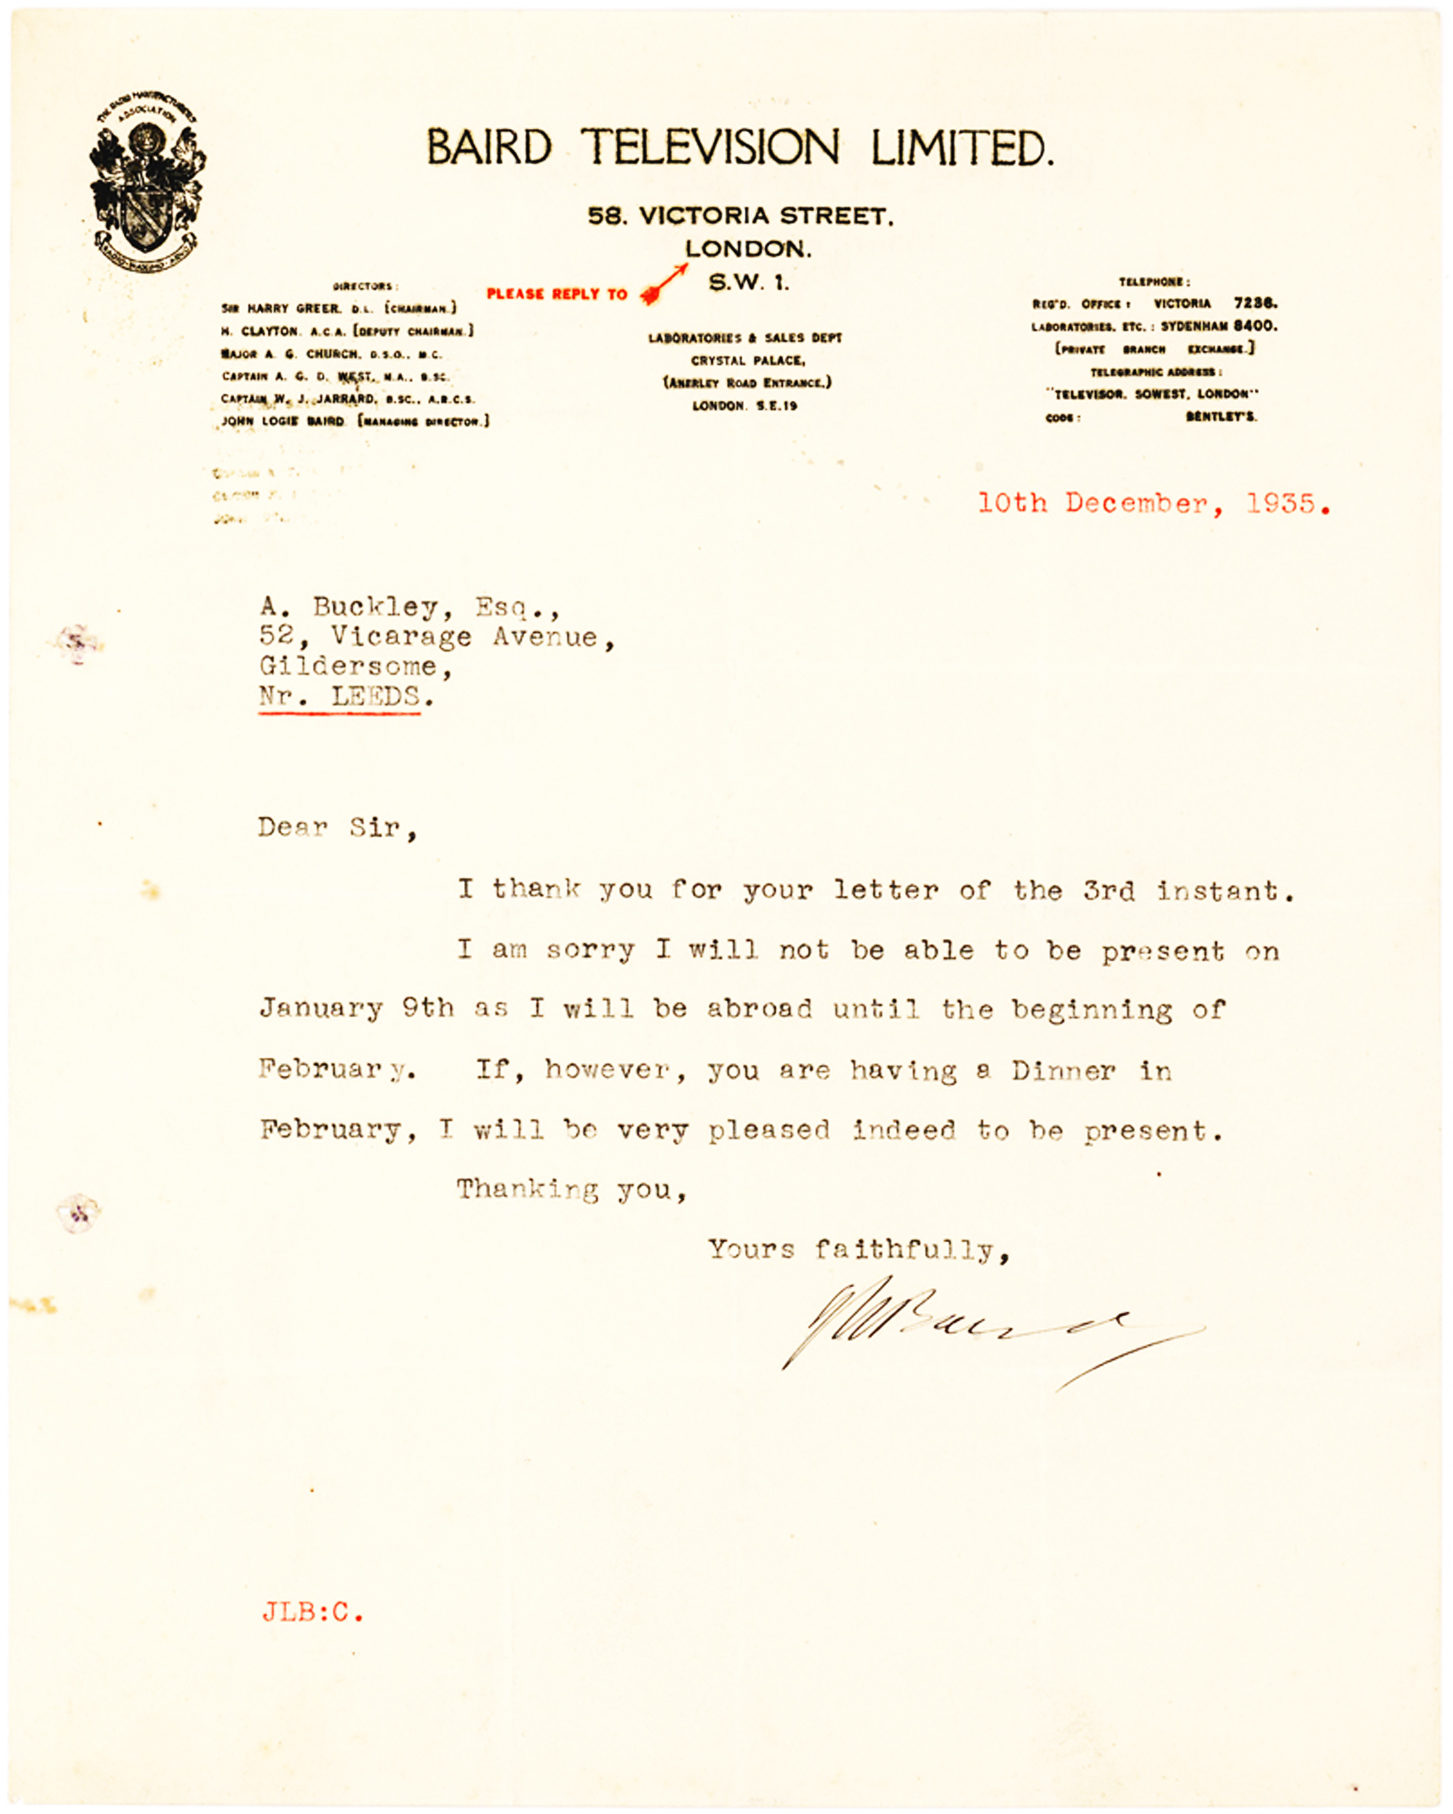 Scarce Letter from the Scottish Inventor of Television, on Baird Television Letterhead